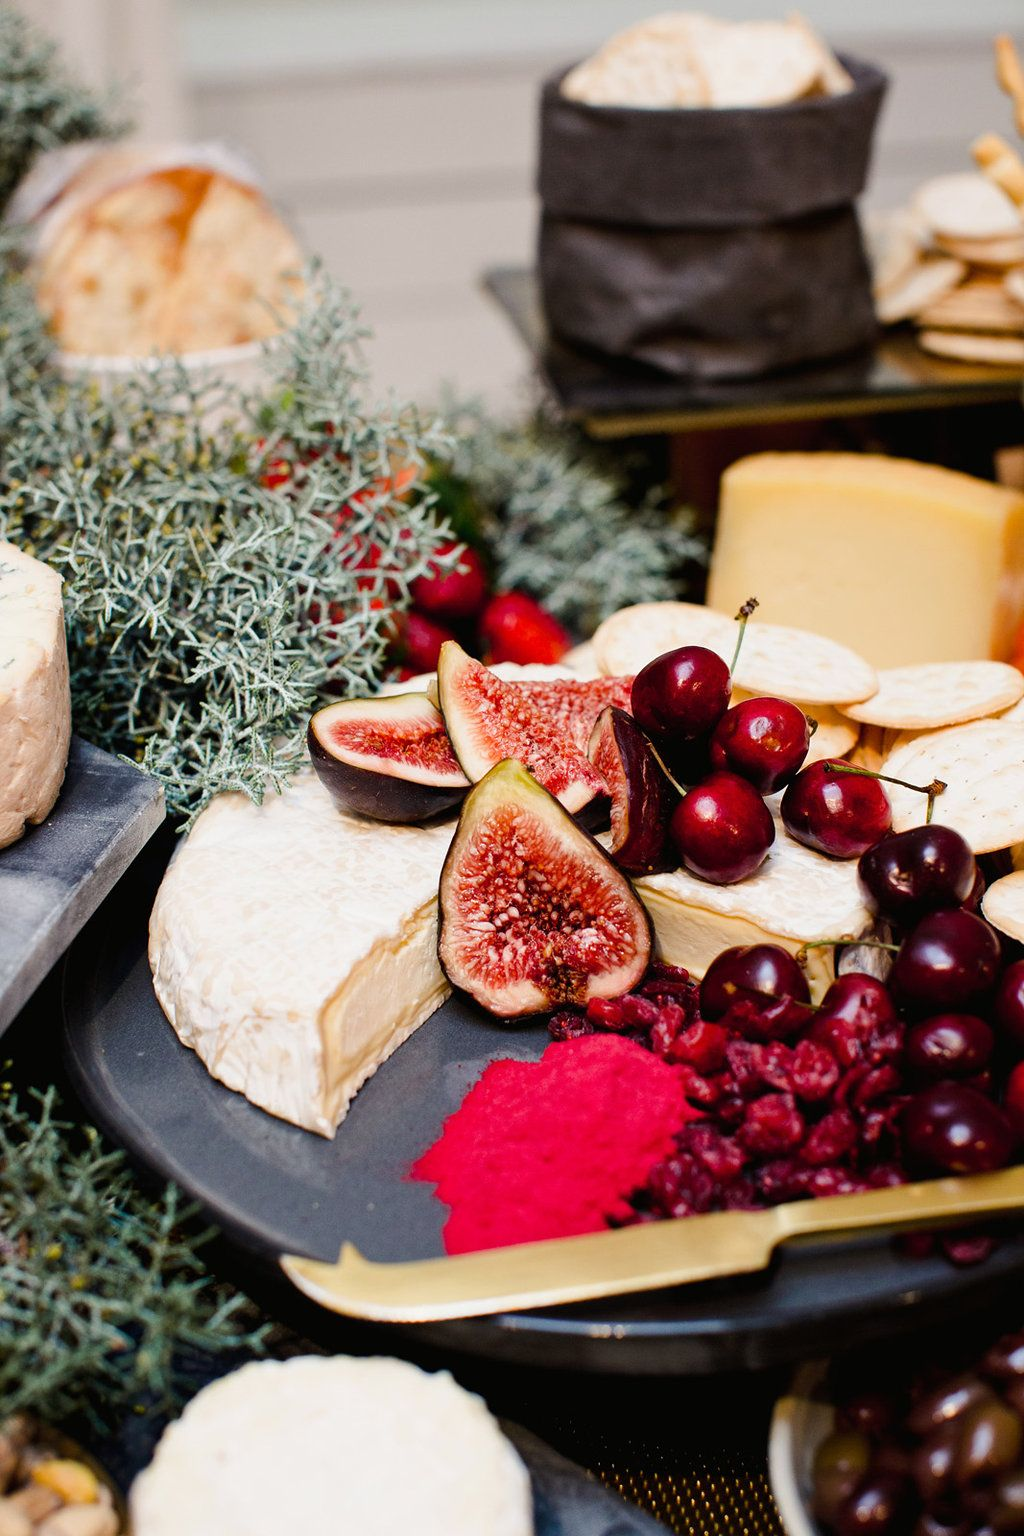 Stunning Grazing Table Created By Tiffanykealcreativestudio For The Hpprlaunch Image By Teneilkable Grazing Tables Grazing Platter Ideas Food